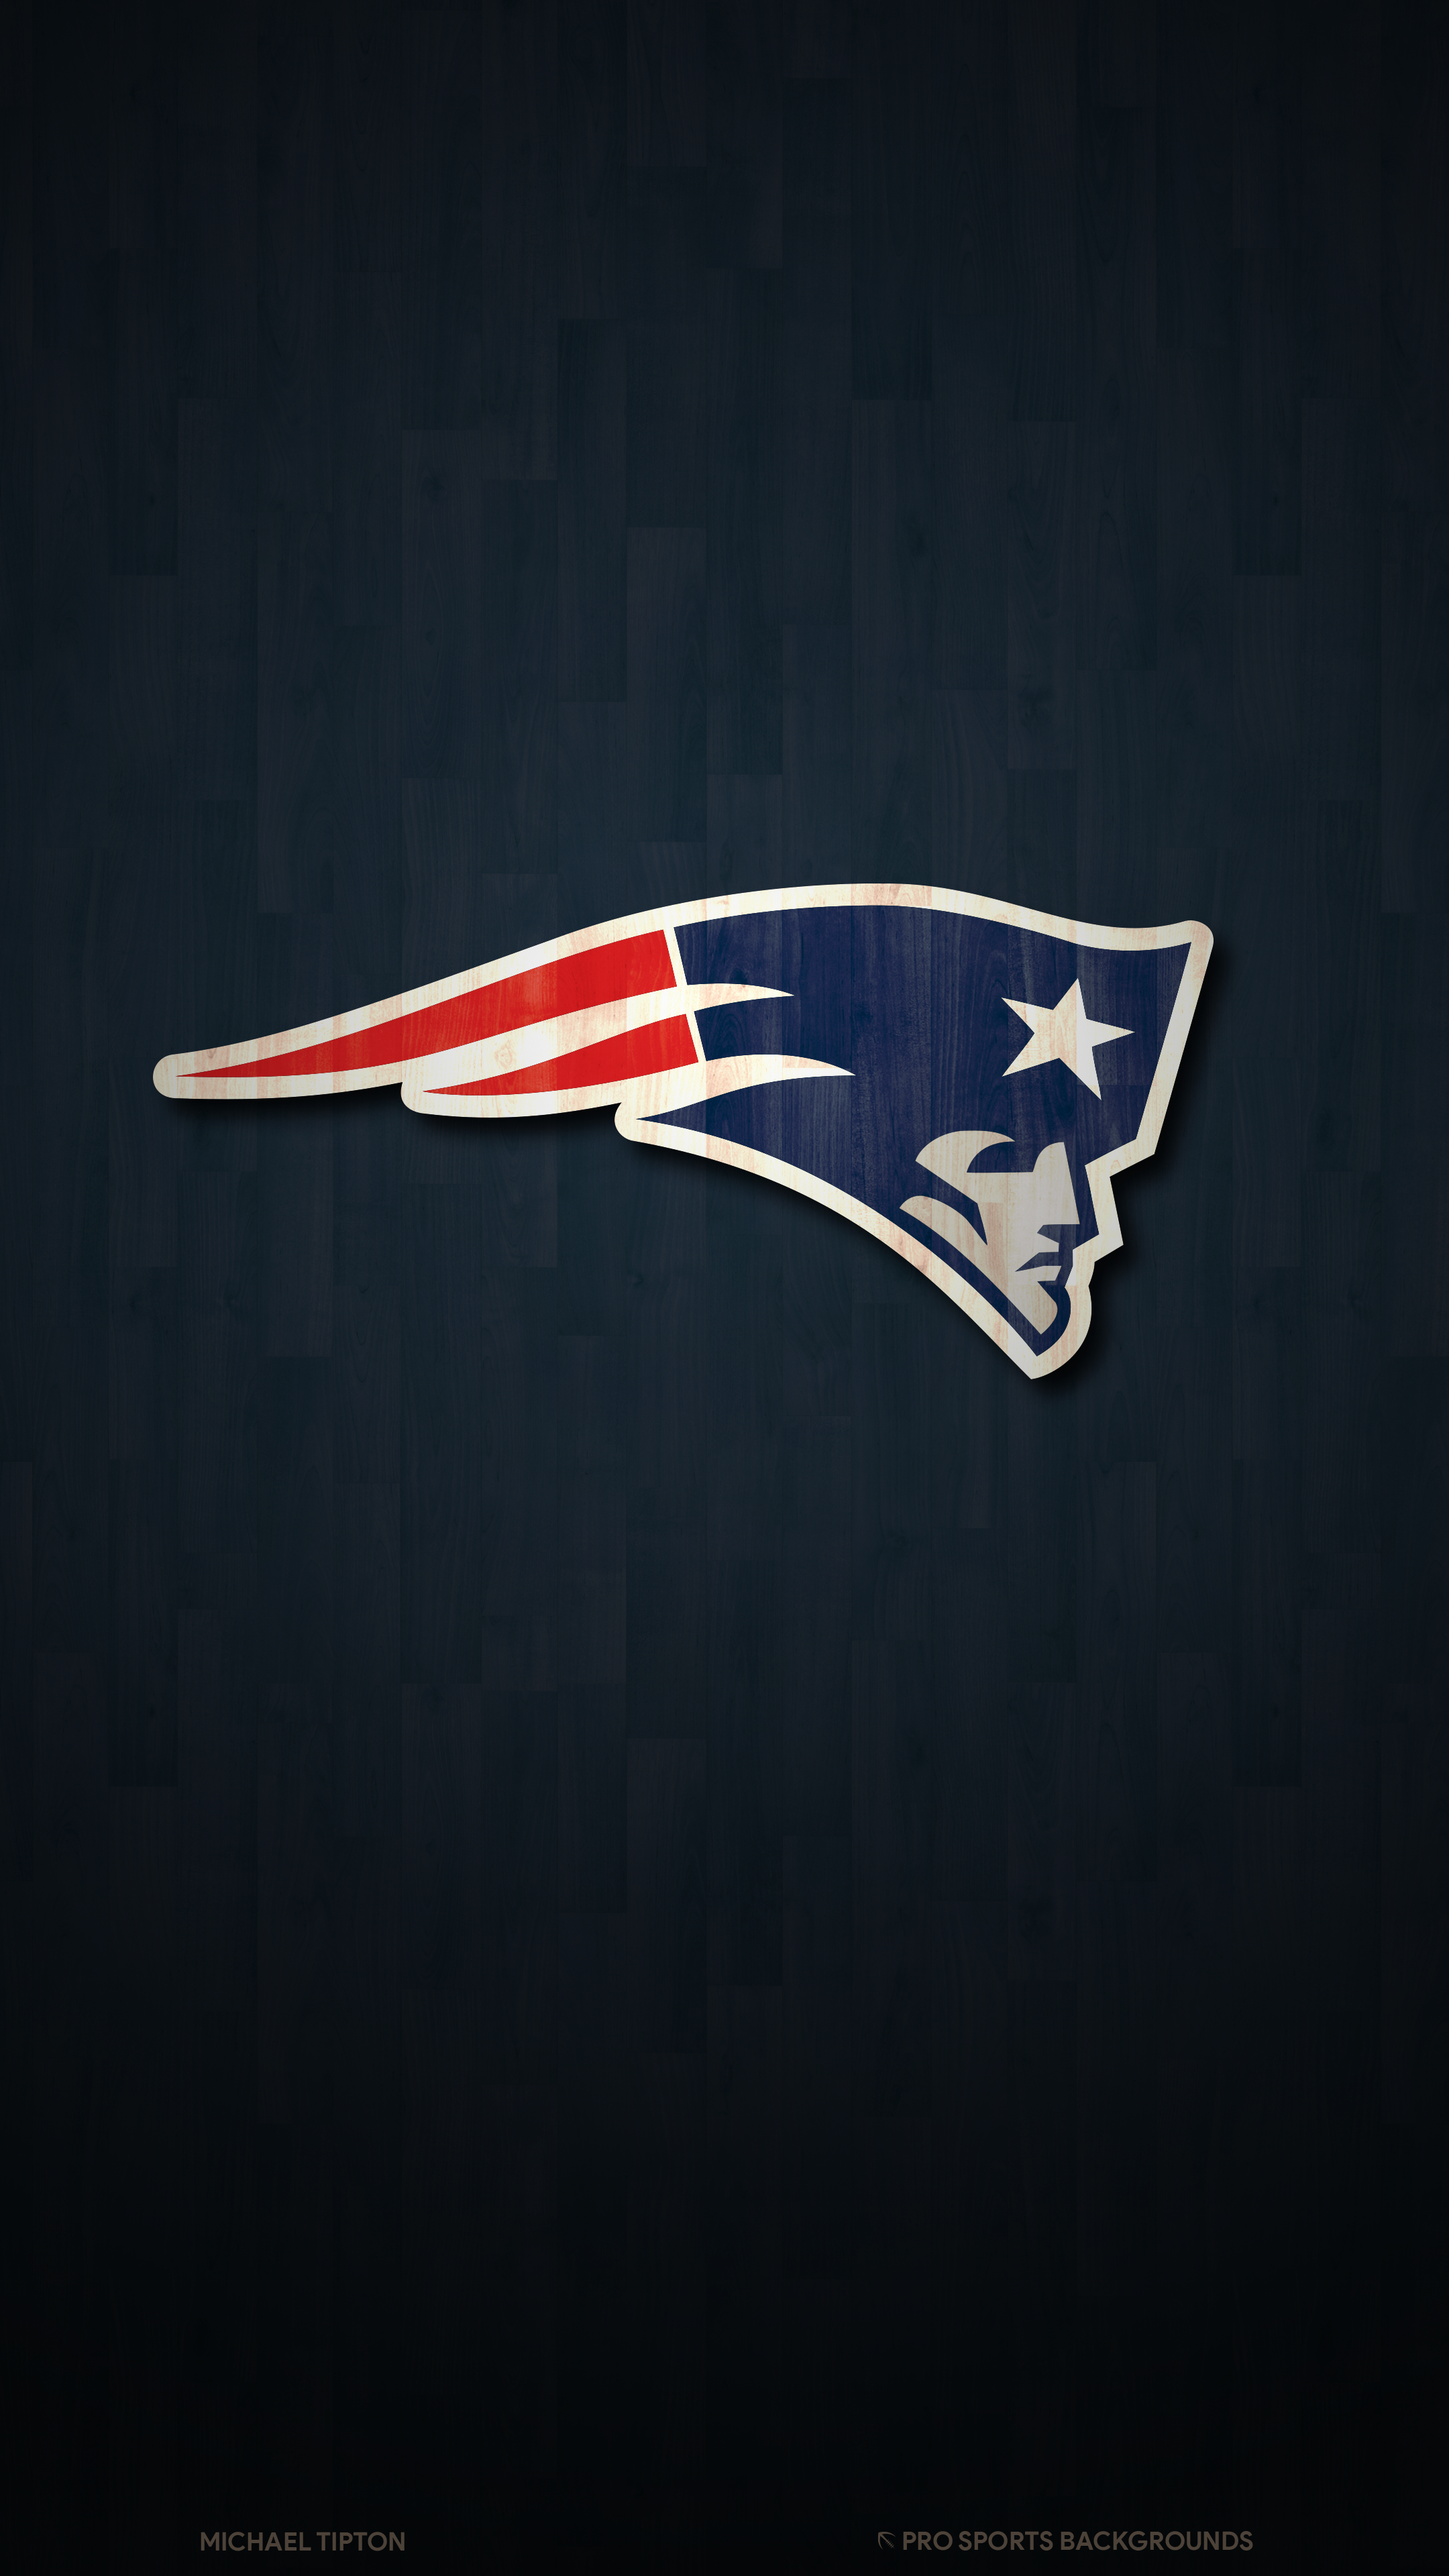 2019 New England Patriots Wallpapers Pro Sports Backgrounds New England Patriots Wallpaper New England Patriots Logo New England Patriots